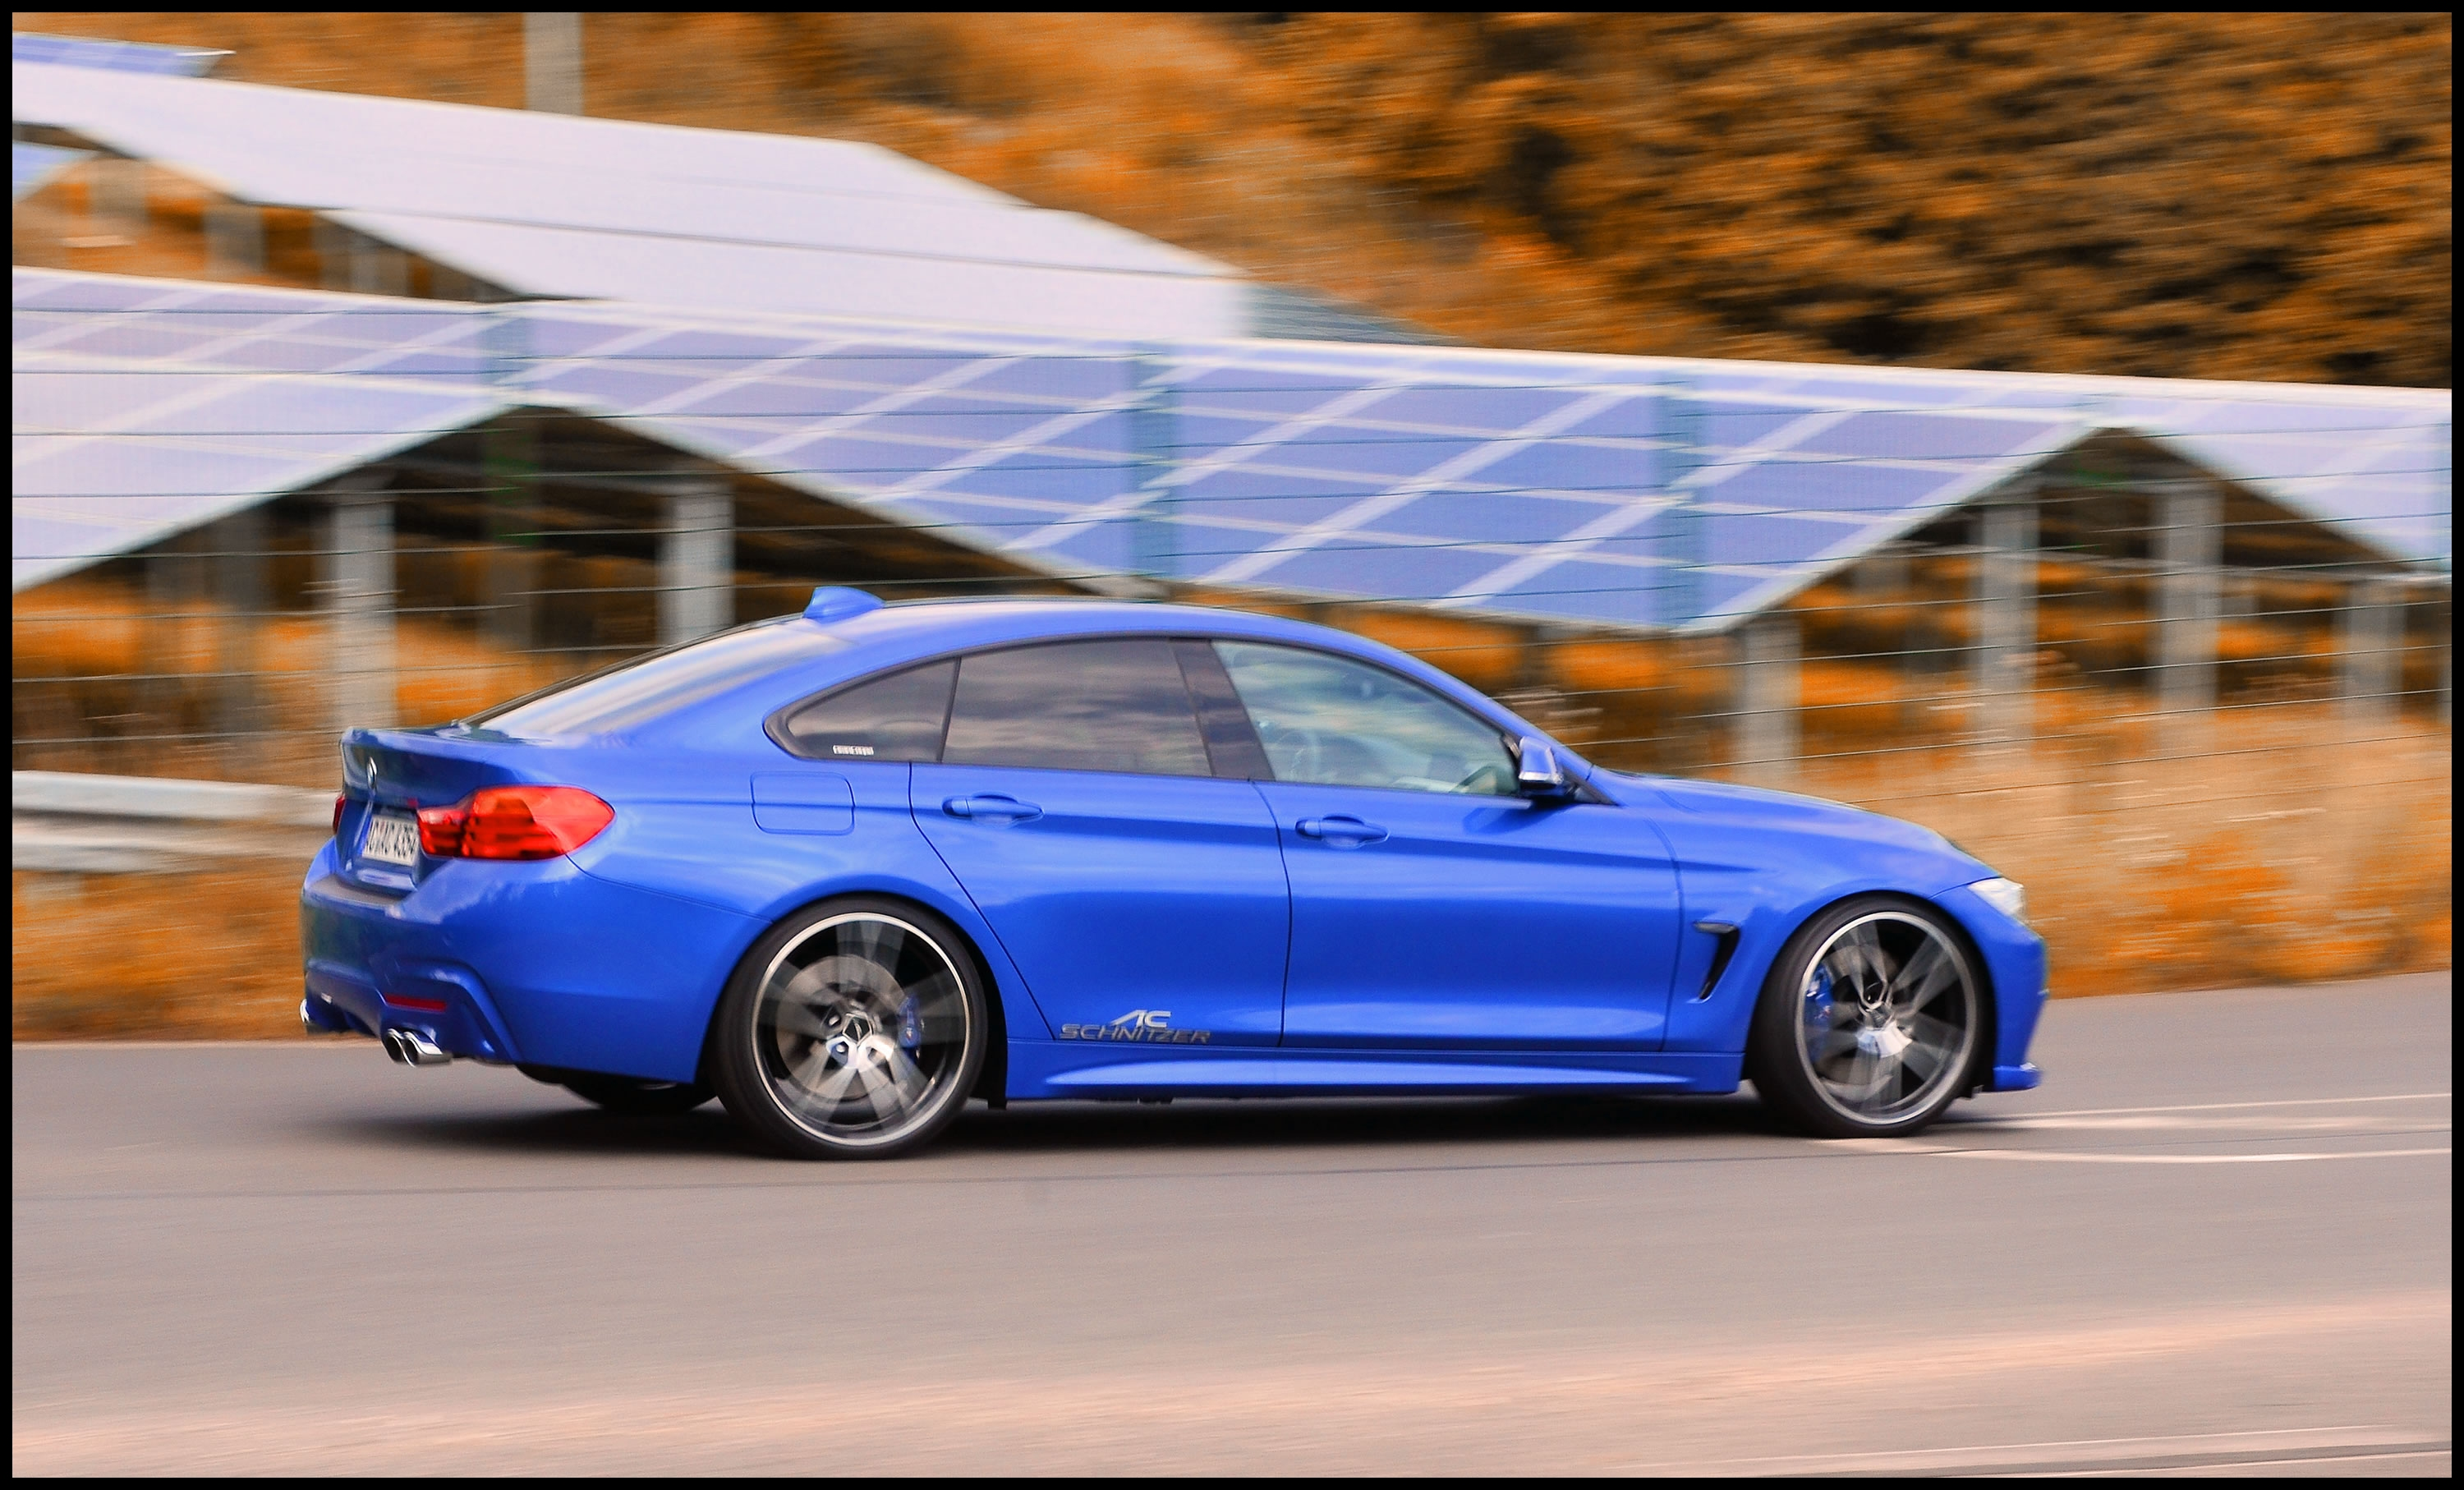 The AC Schnitzer suspension spring kit lowers the 4 Series by up to 25 mm